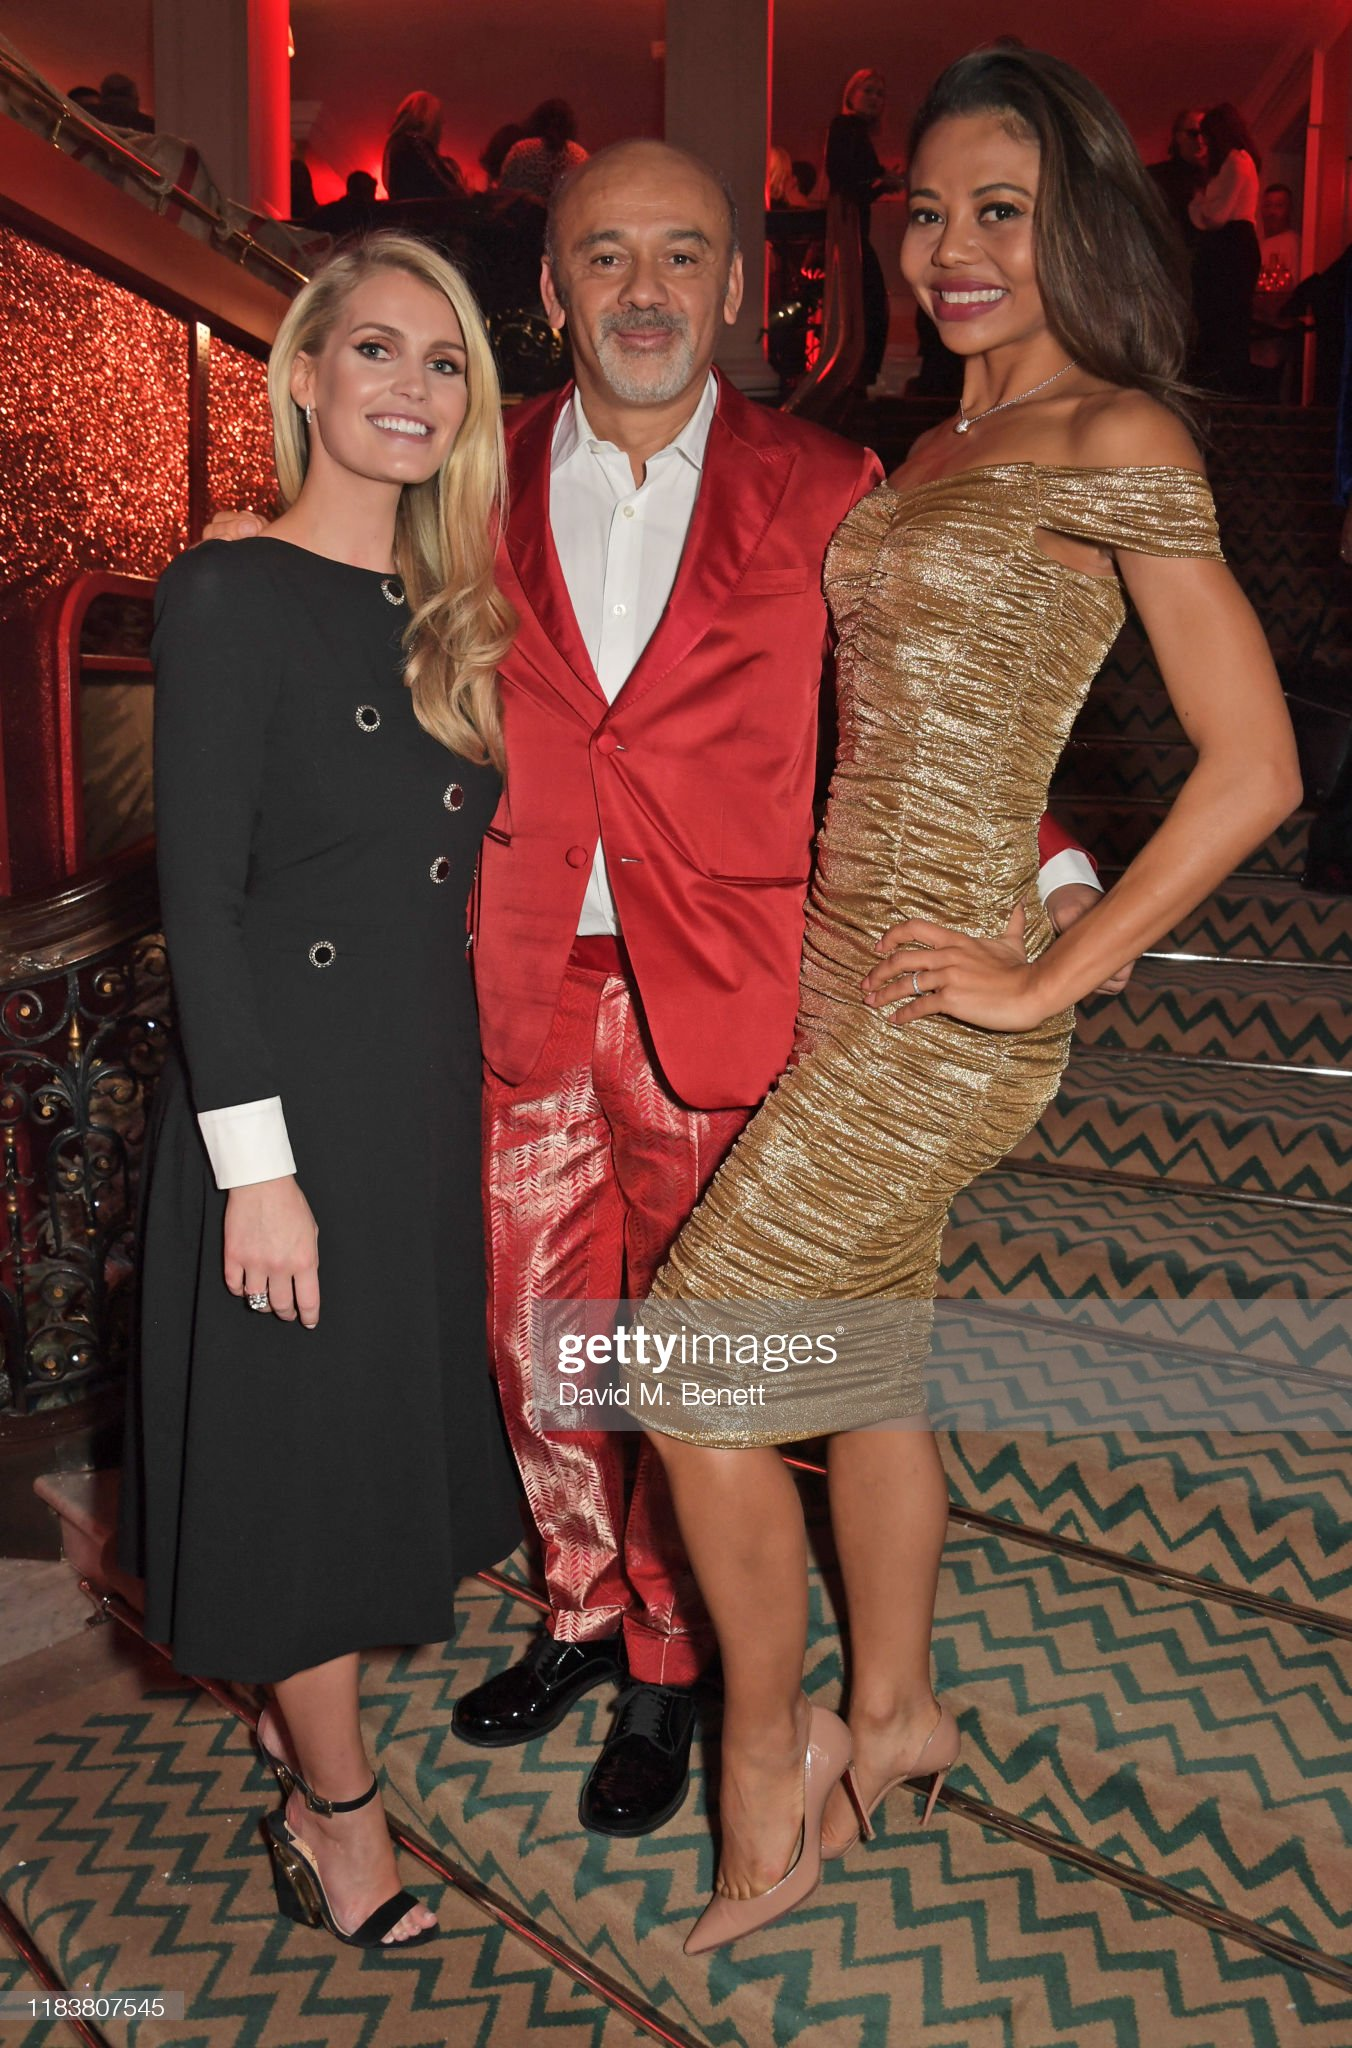 https://media.gettyimages.com/photos/lady-kitty-spencer-christian-louboutin-and-emma-weymouth-attend-the-picture-id1183807545?s=2048x2048